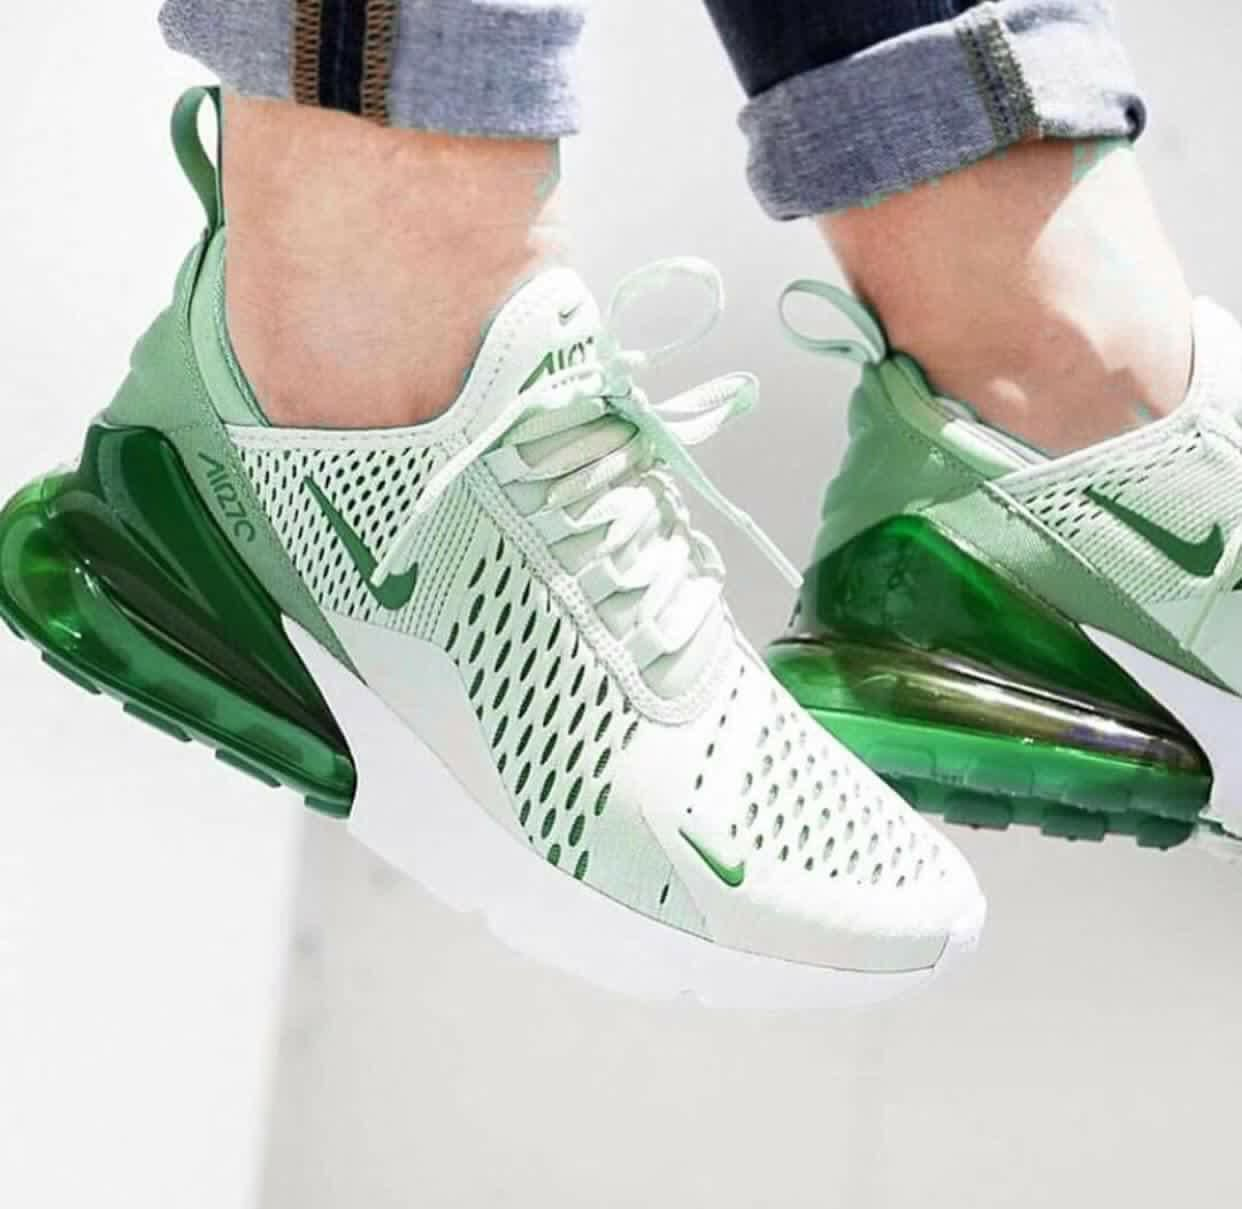 Green Nike Air Max 270 in 2019 | Shoes, Nike shoes, Shoe boots